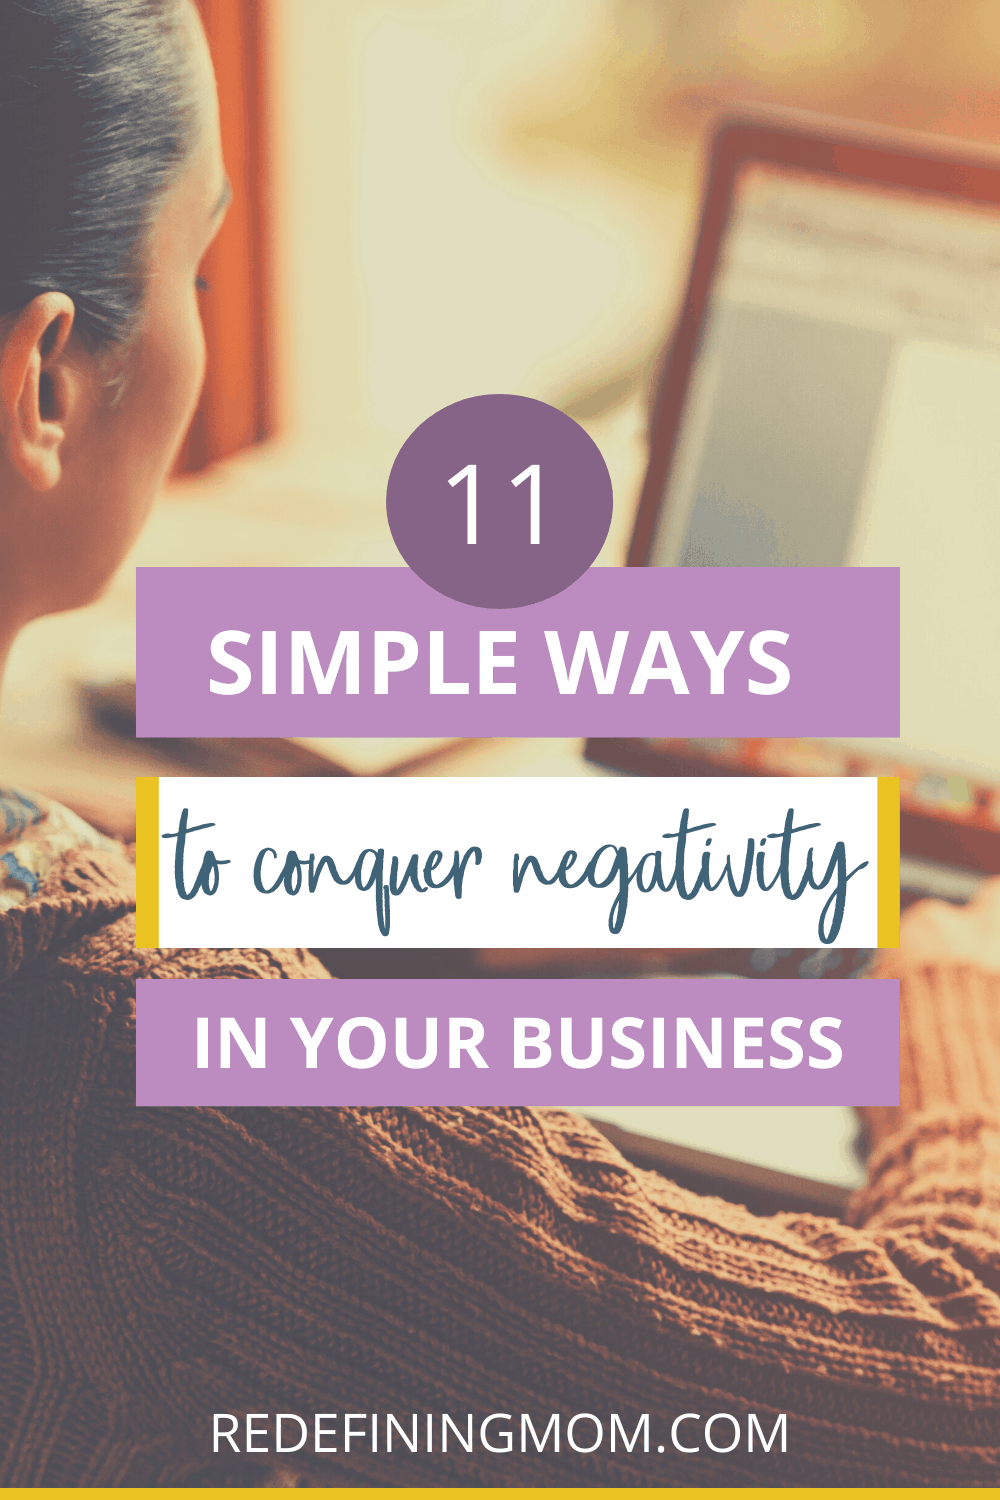 In order to conquer negativity, you must lean into the positive and focus on the productive. I have 11 simple steps you can take to defeat the negativity threatening your online business.